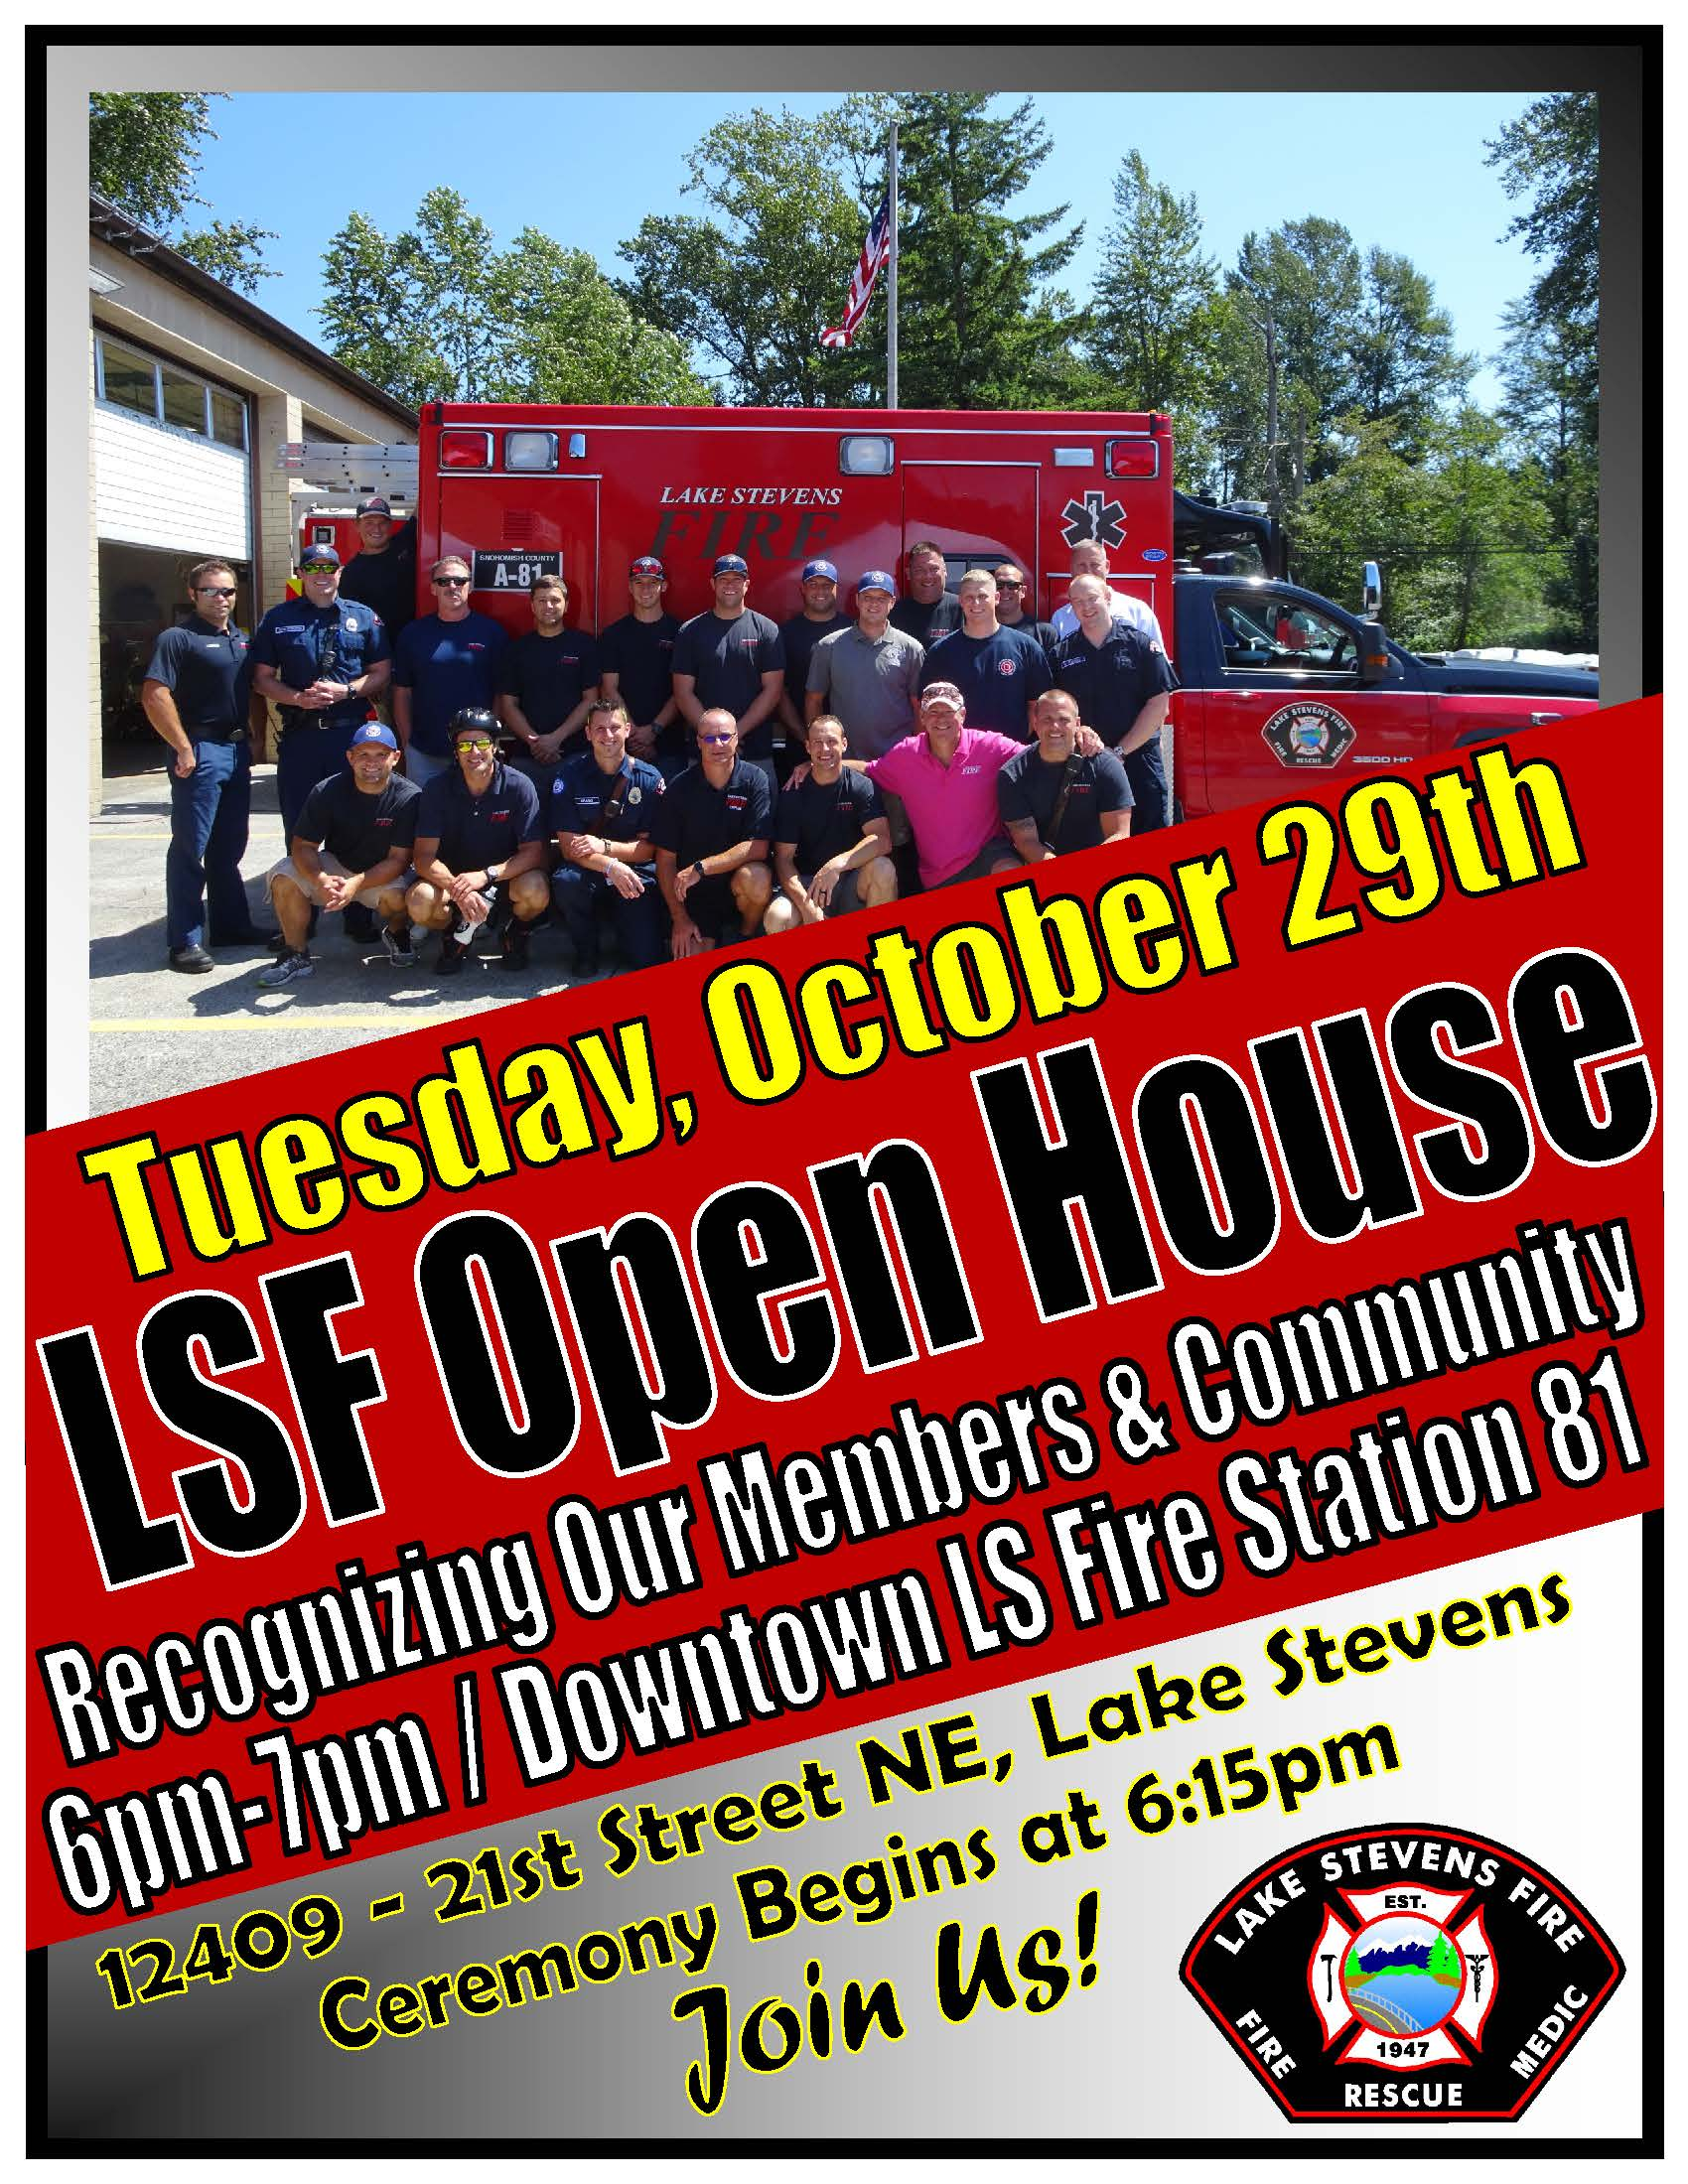 LSF Open House Flyer Invite - Large 8.5x11